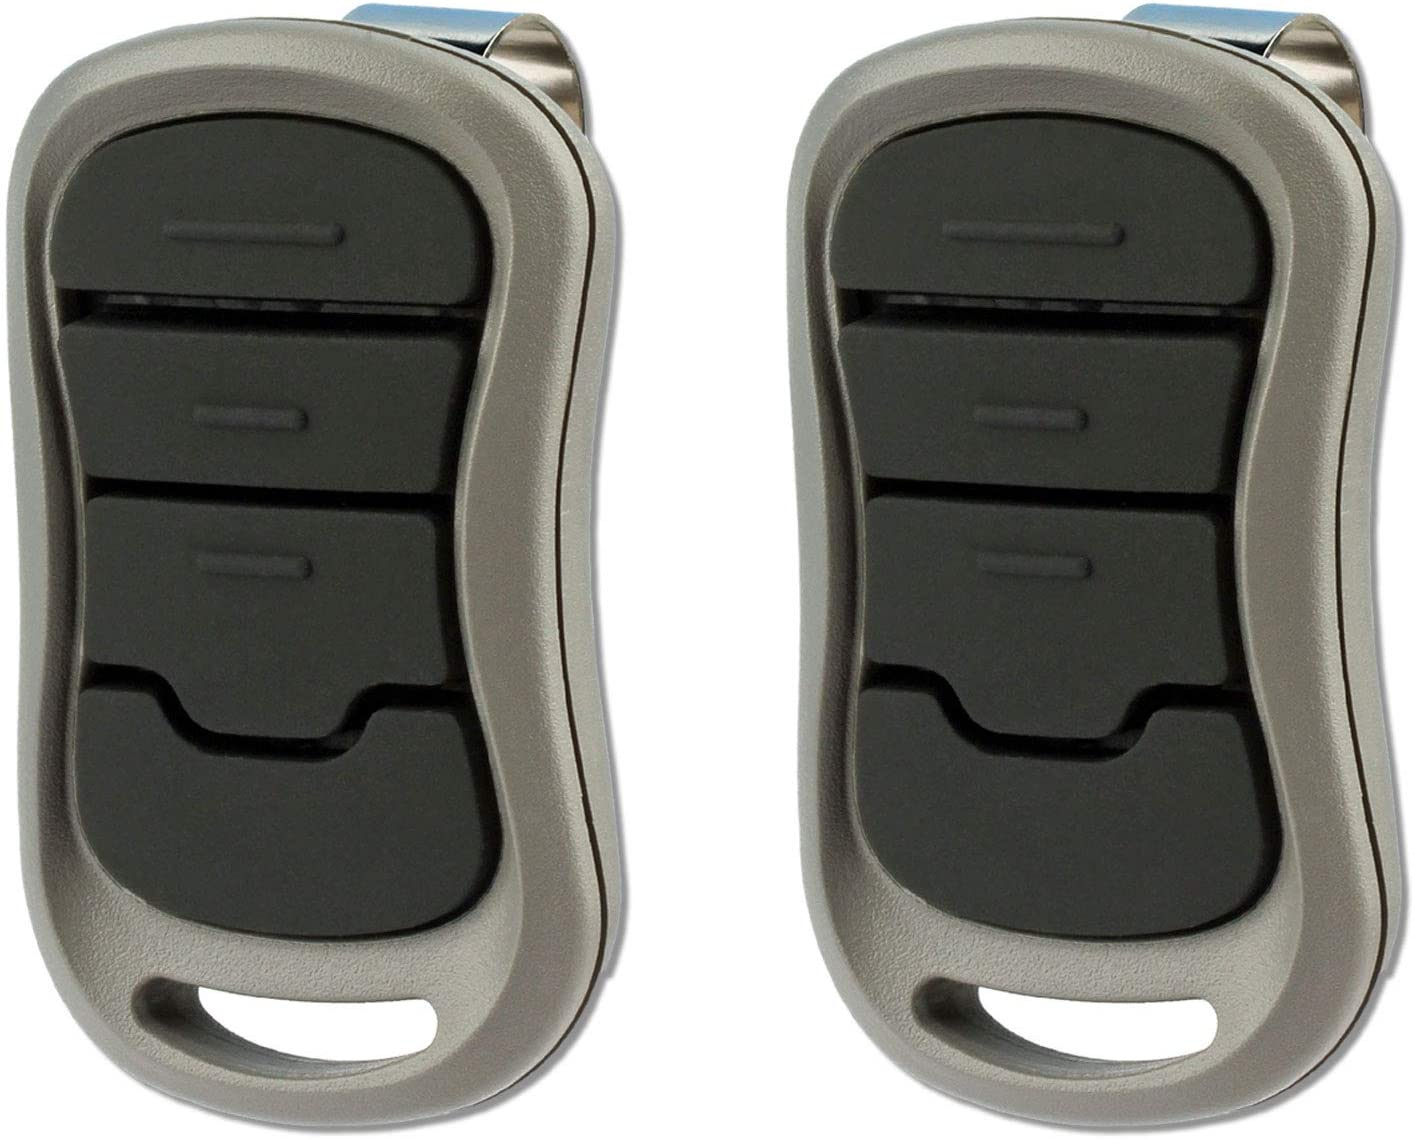 2 Garage Door Opener Remotes for Genie Intellicode G3T-R